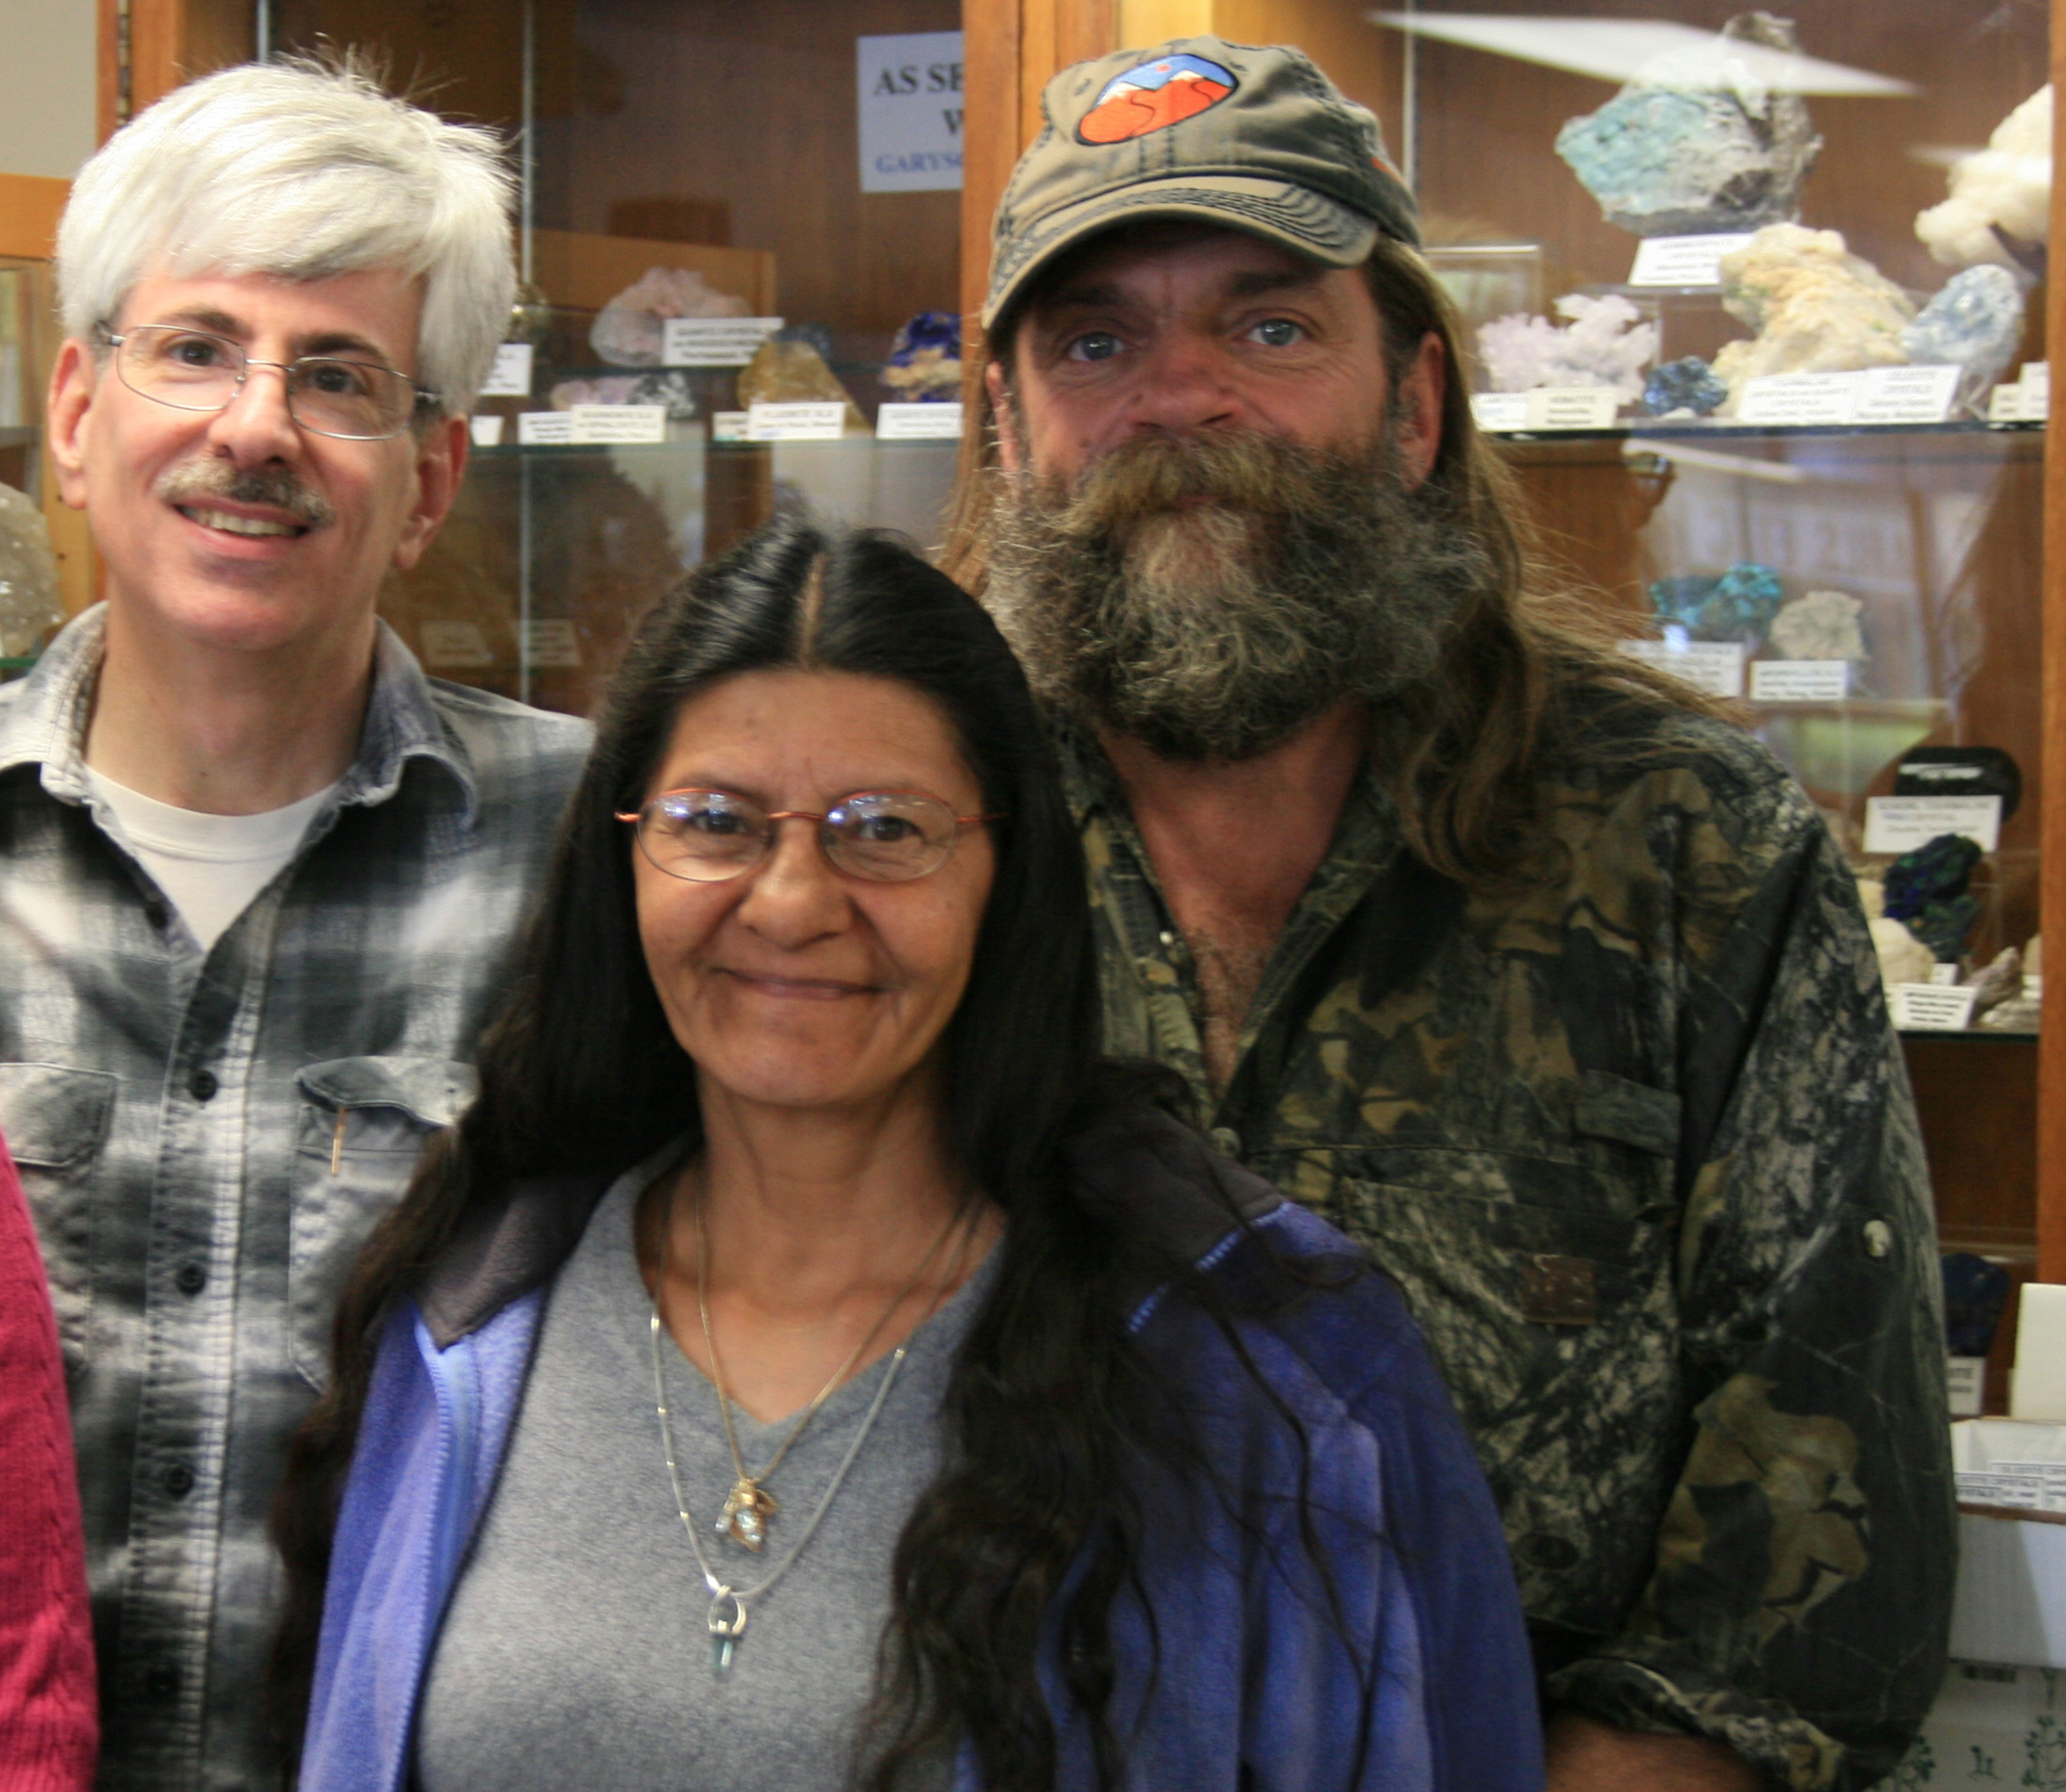 Brian and Yolanda Busse came to visit our store back in April. \